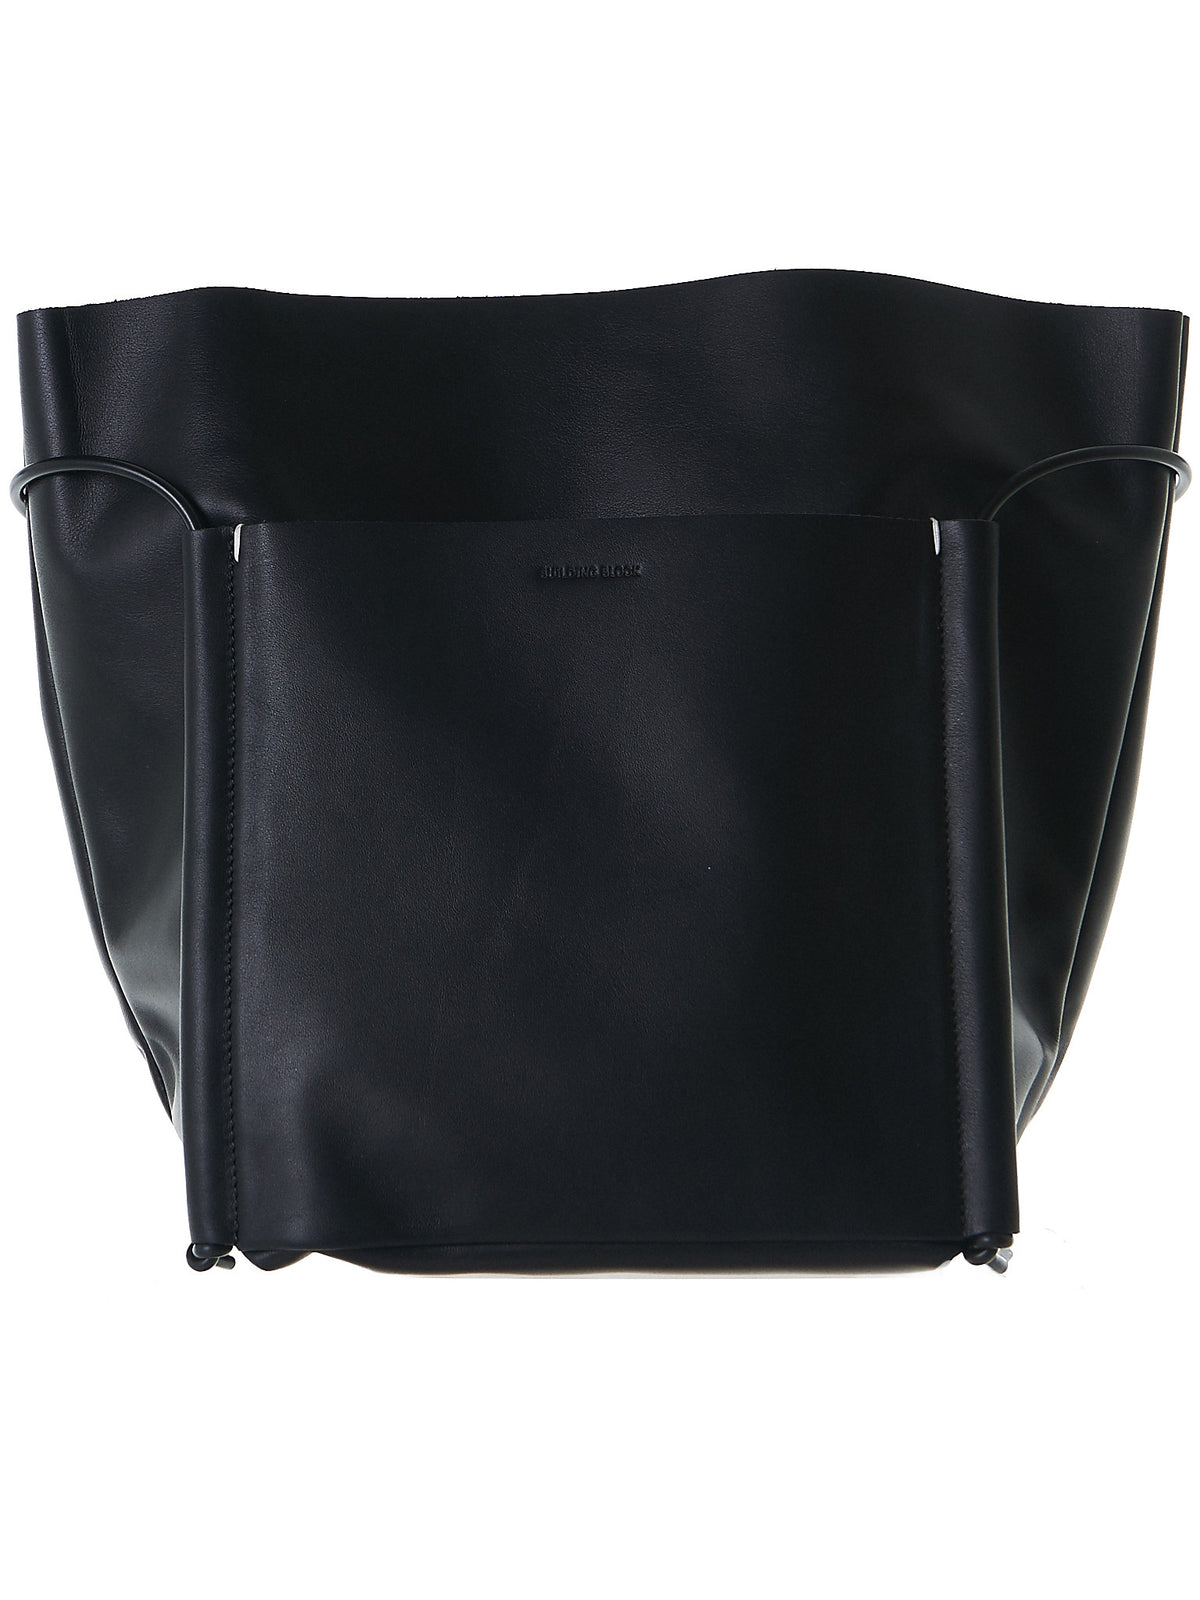 BB25-POCKET-TOTE-BLACK - H. Lorenzo